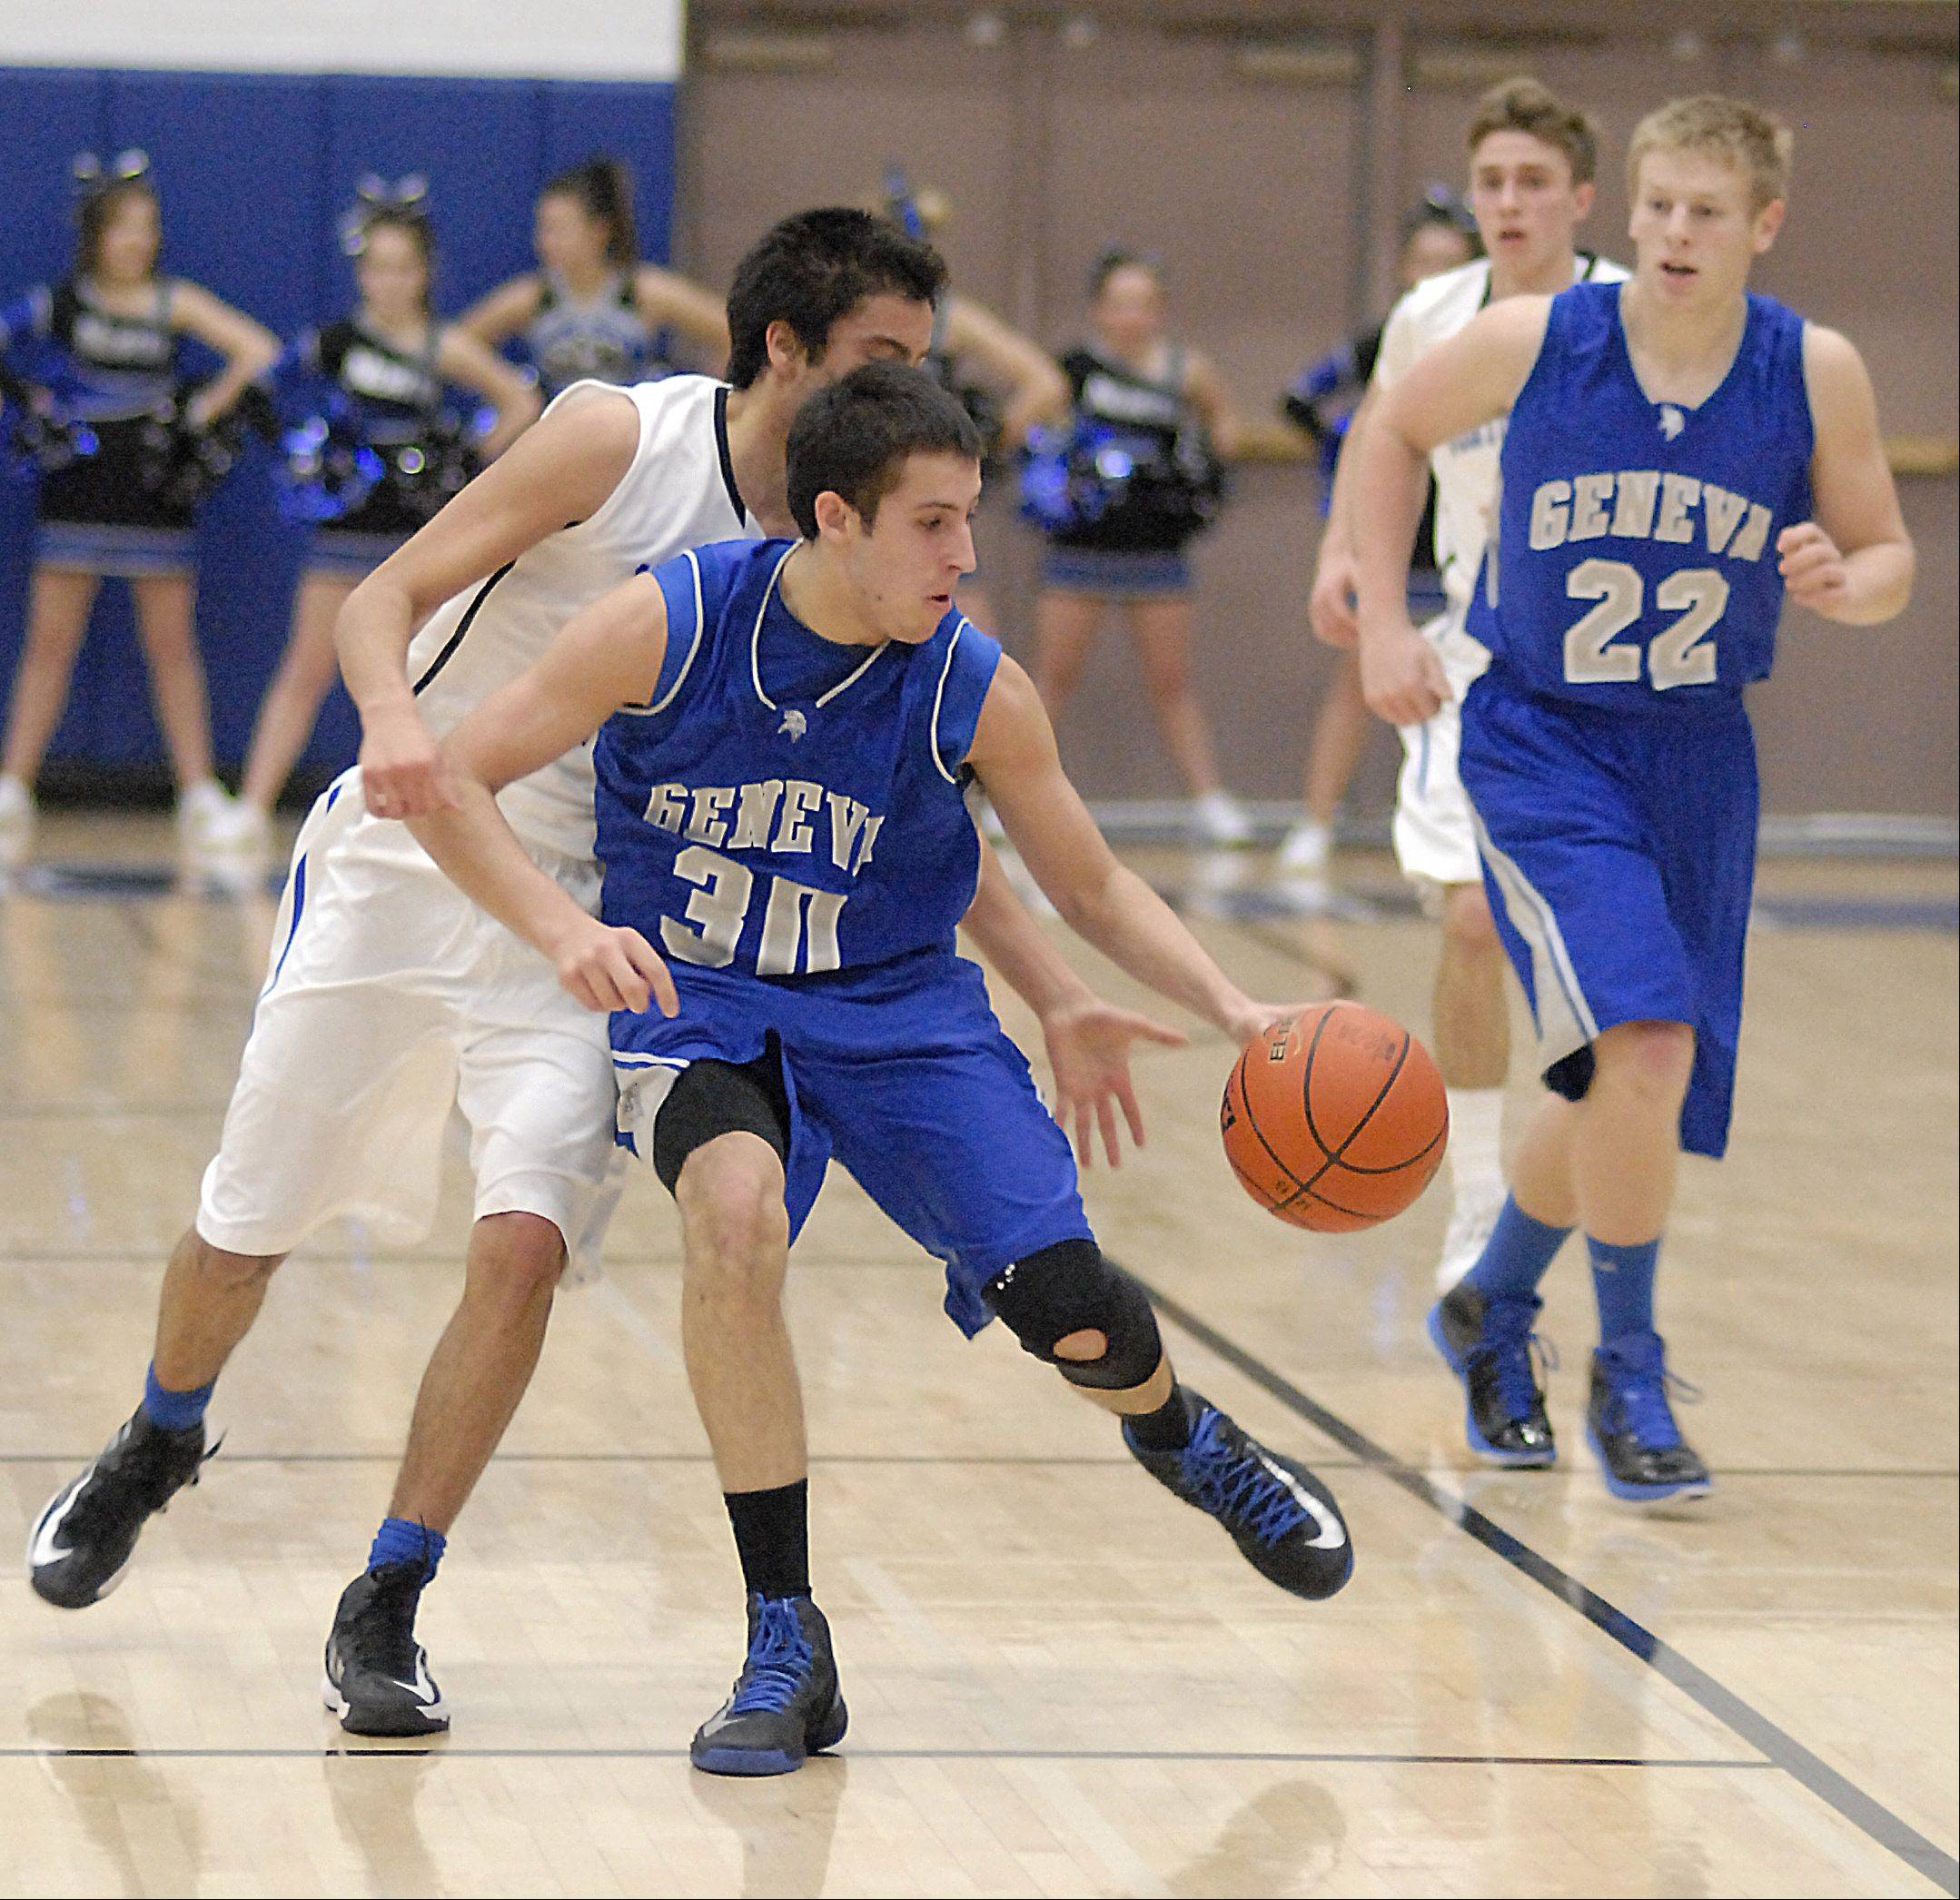 Images: Geneva vs. St. Charles North, boys basketball